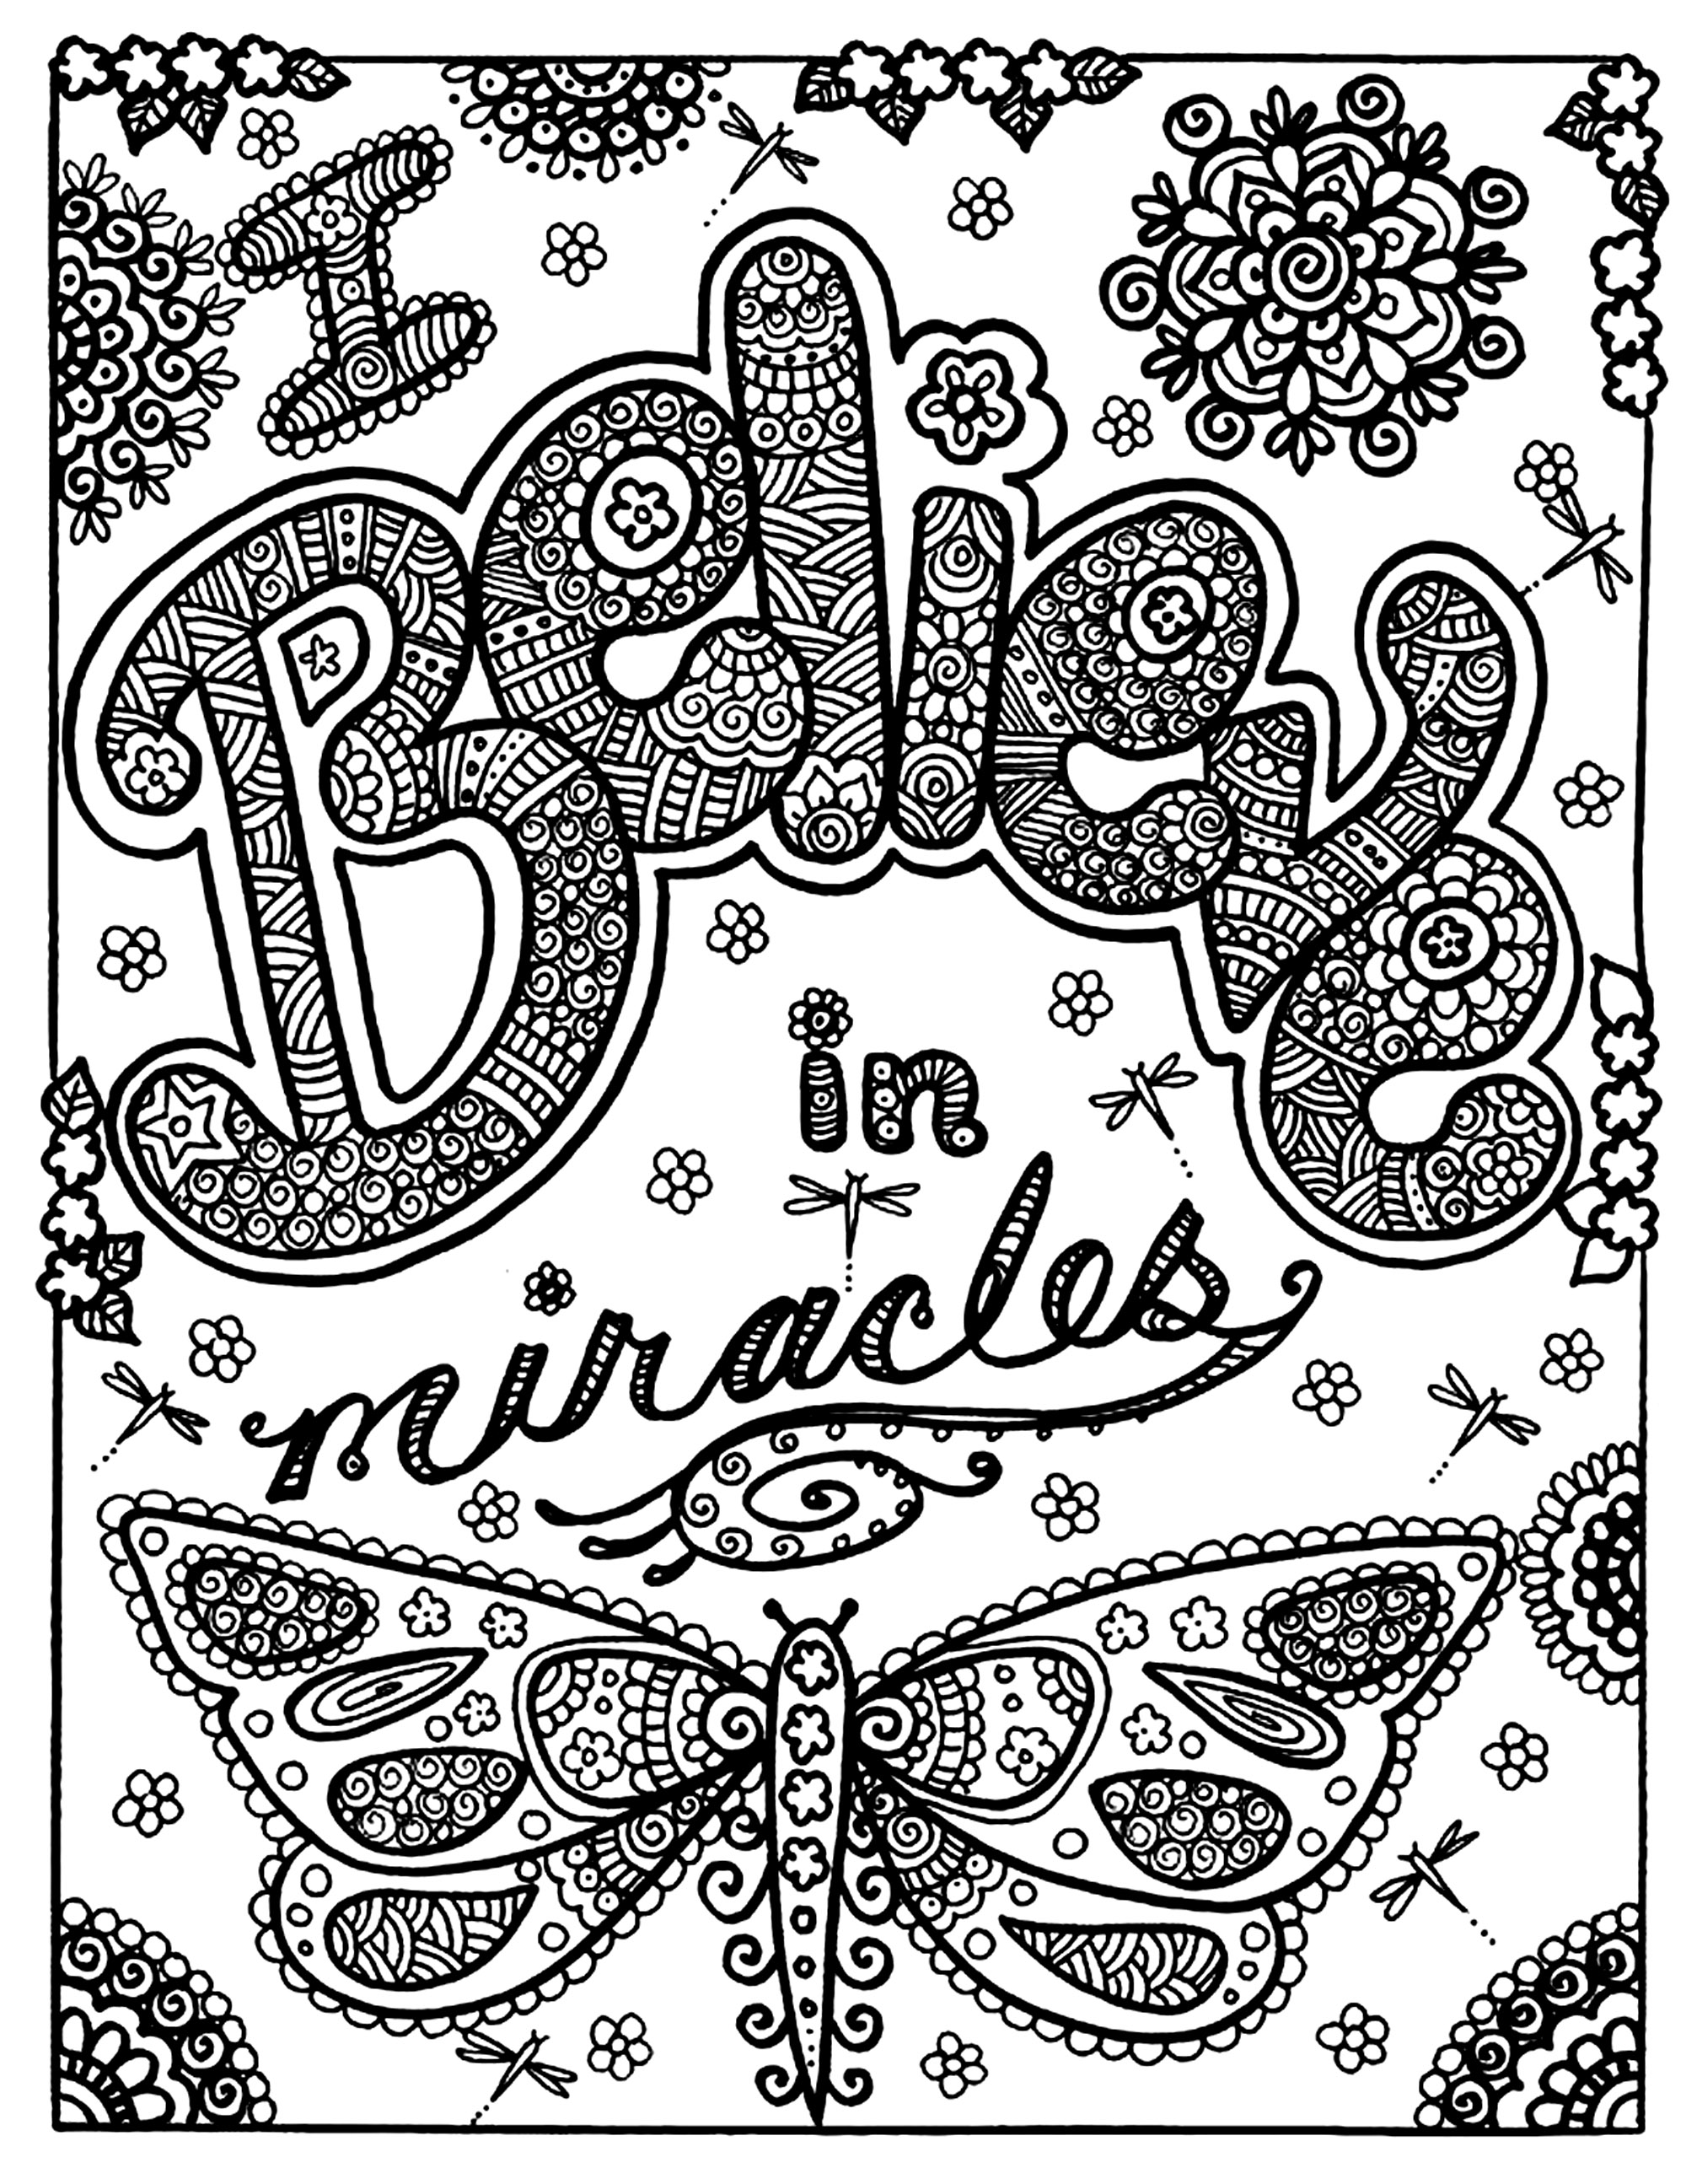 Magnificient drawing with the text 'I believe in miracles', and a beautiful butterfly ...